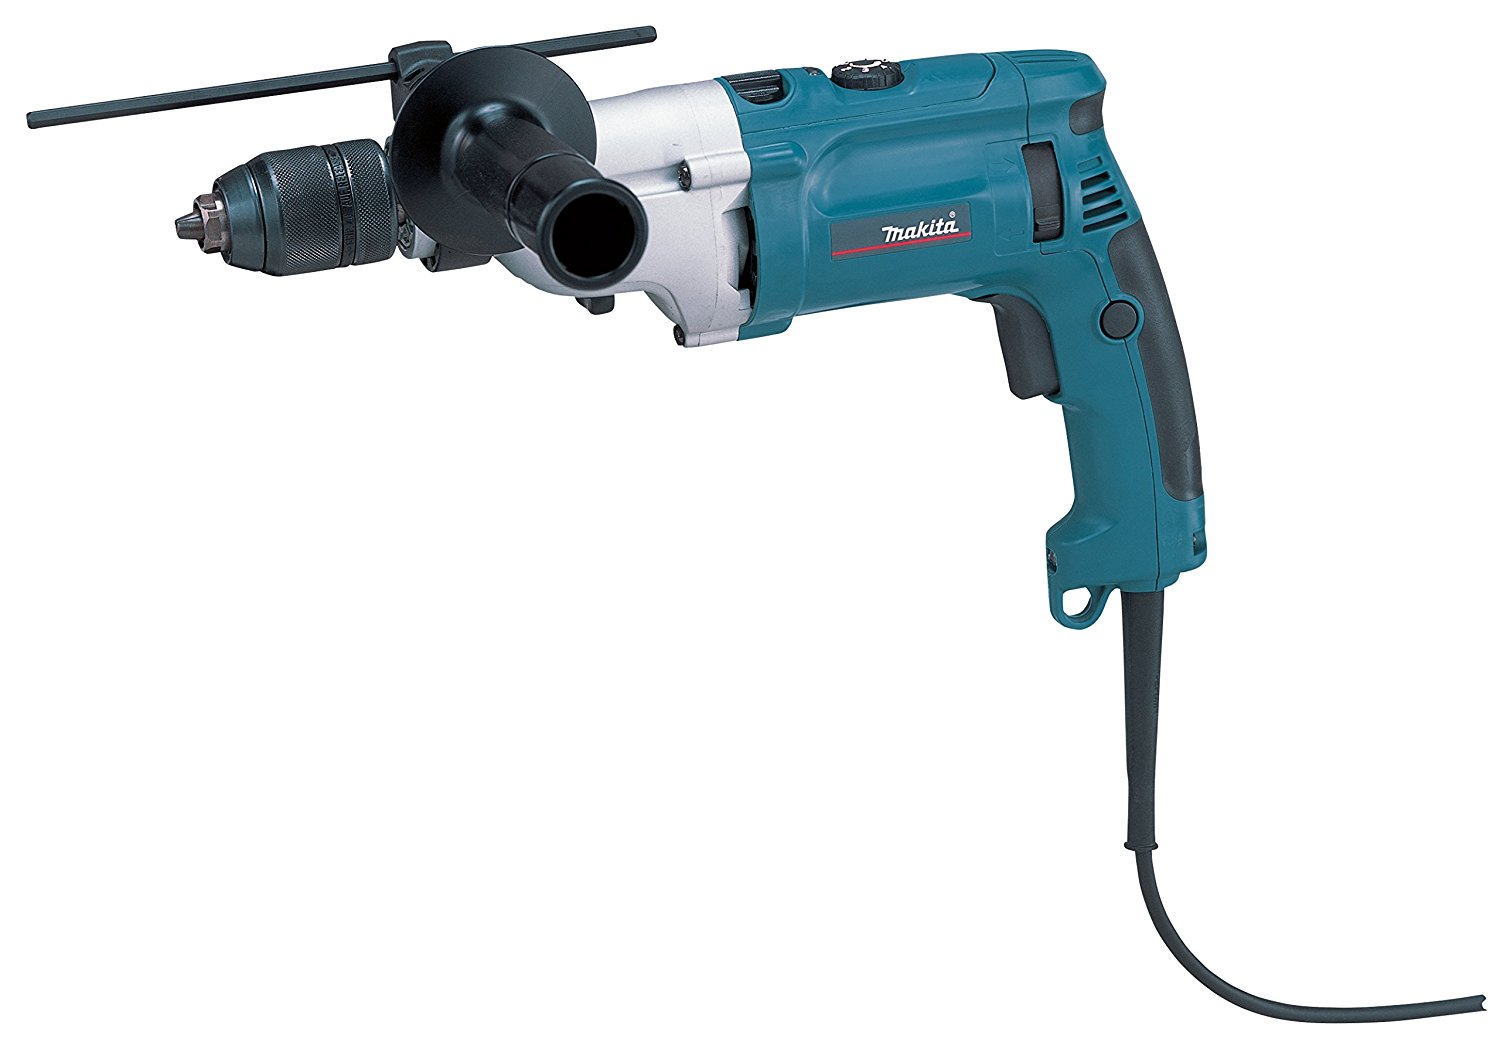 hp2071fj-makita-2 Avis Perceuse a percussion Bosch PSB 850-2 RE